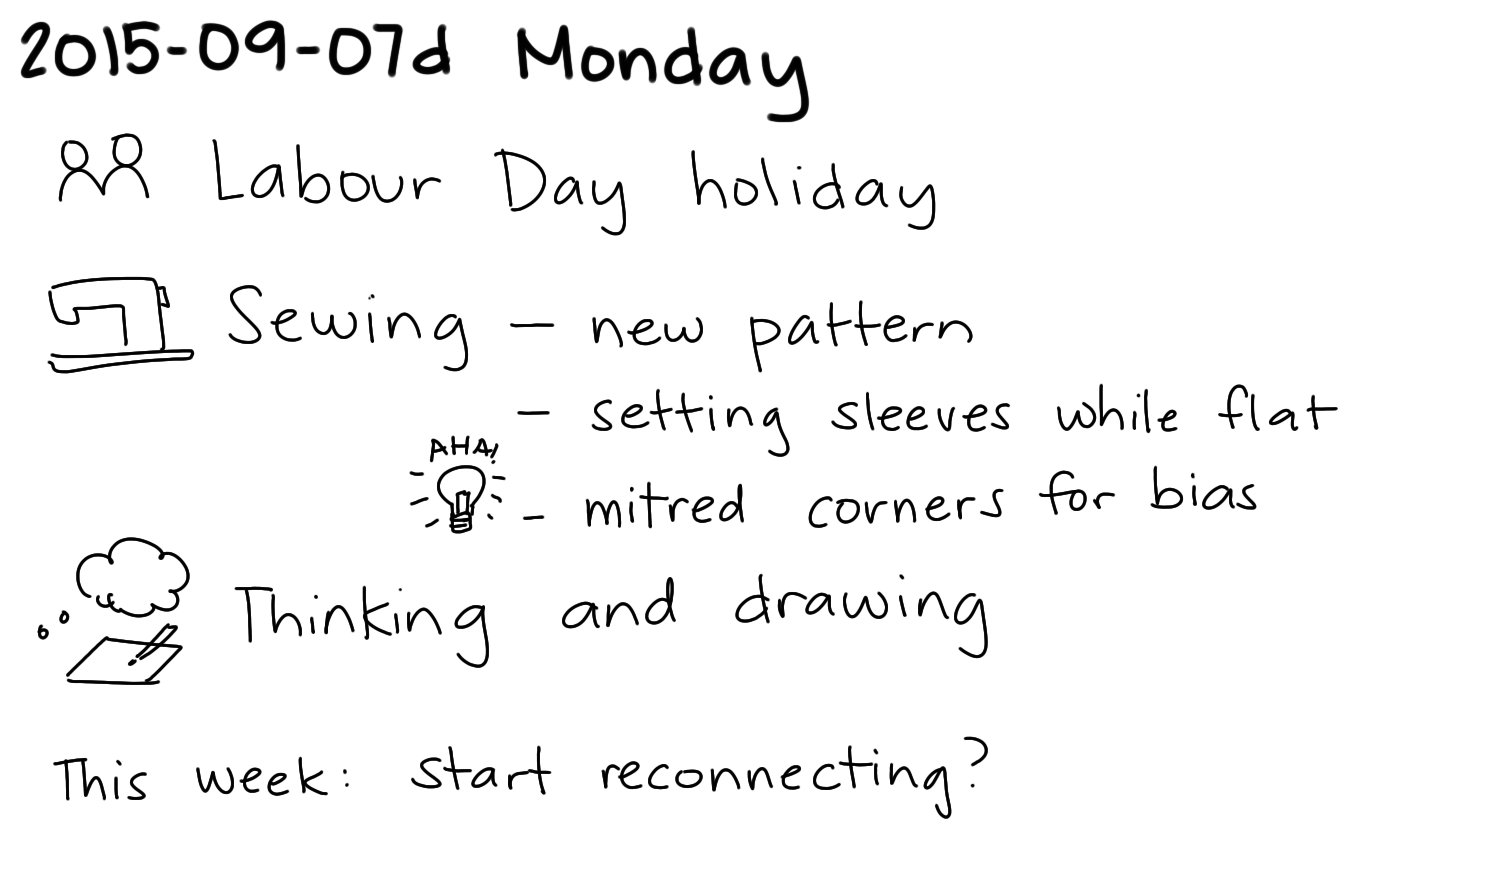 2015-09-07d Monday -- index card #journal.png